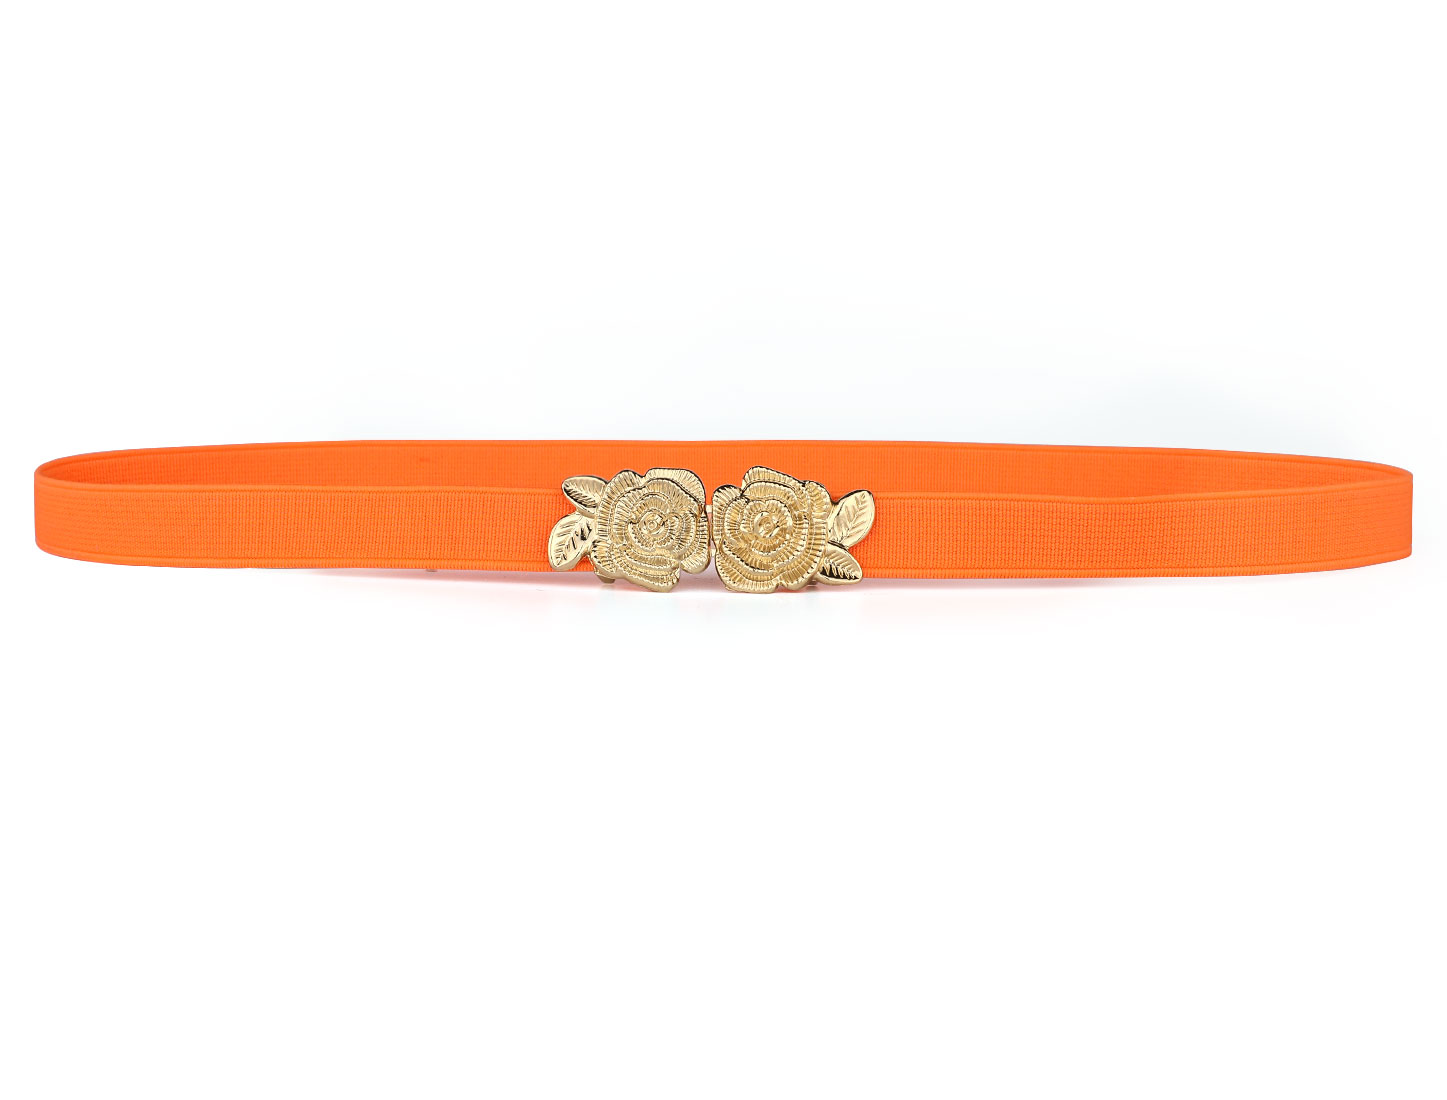 Rose Metal Interlocking Buckle Orange Elastic Waistband Belt for Women Ladies